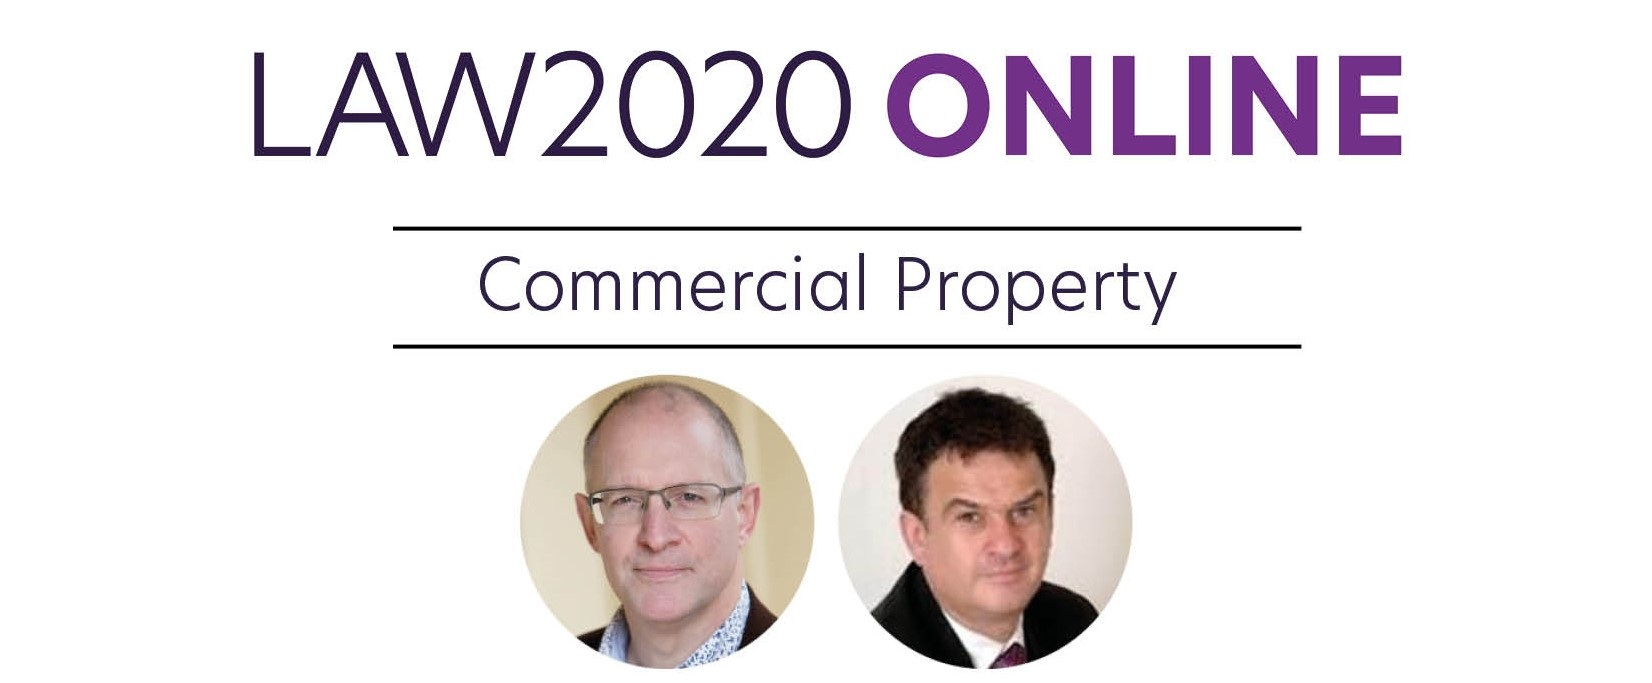 LAW2020 Online Commercial Property